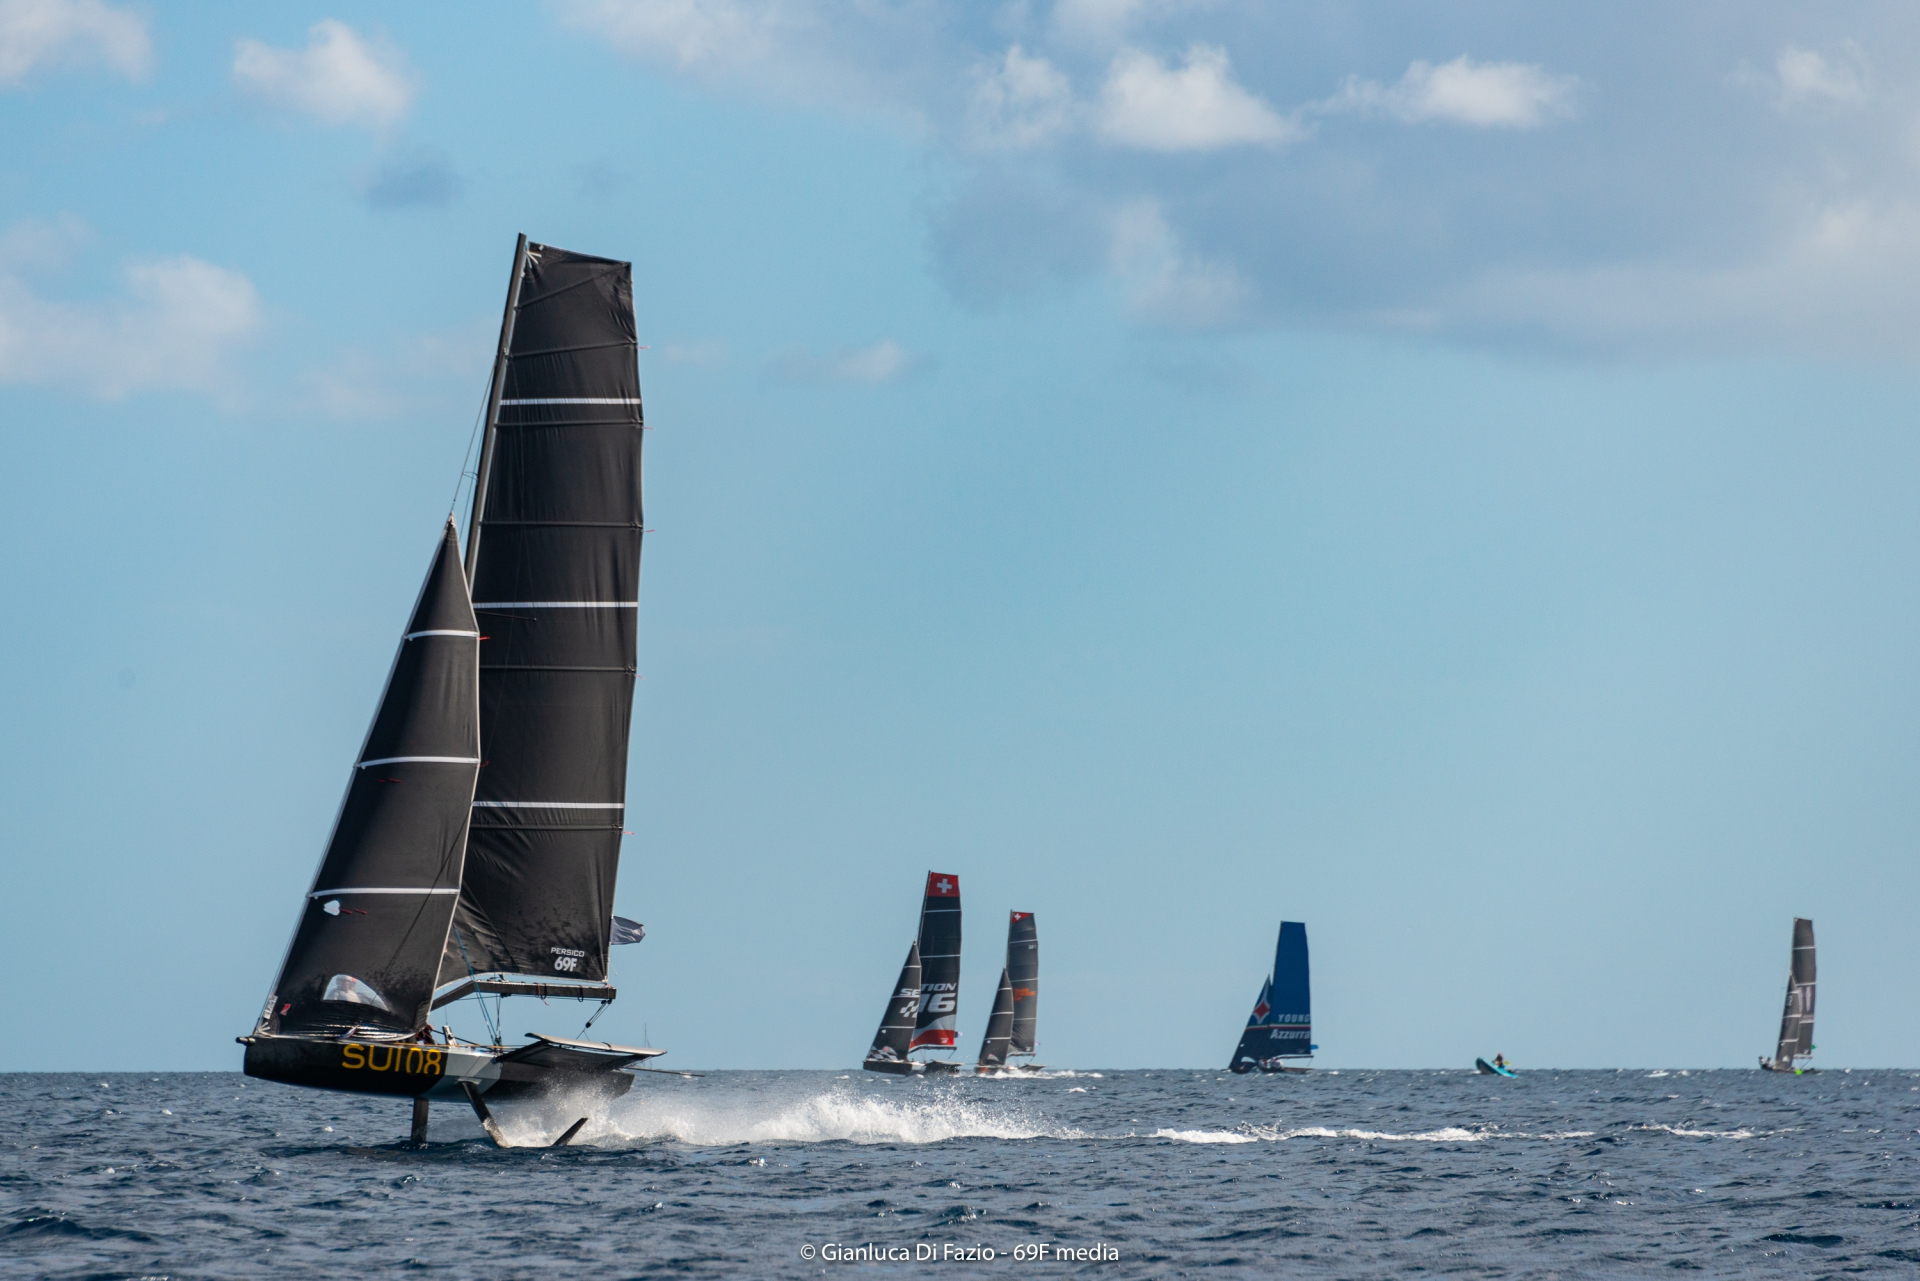 Boat making their way upwind